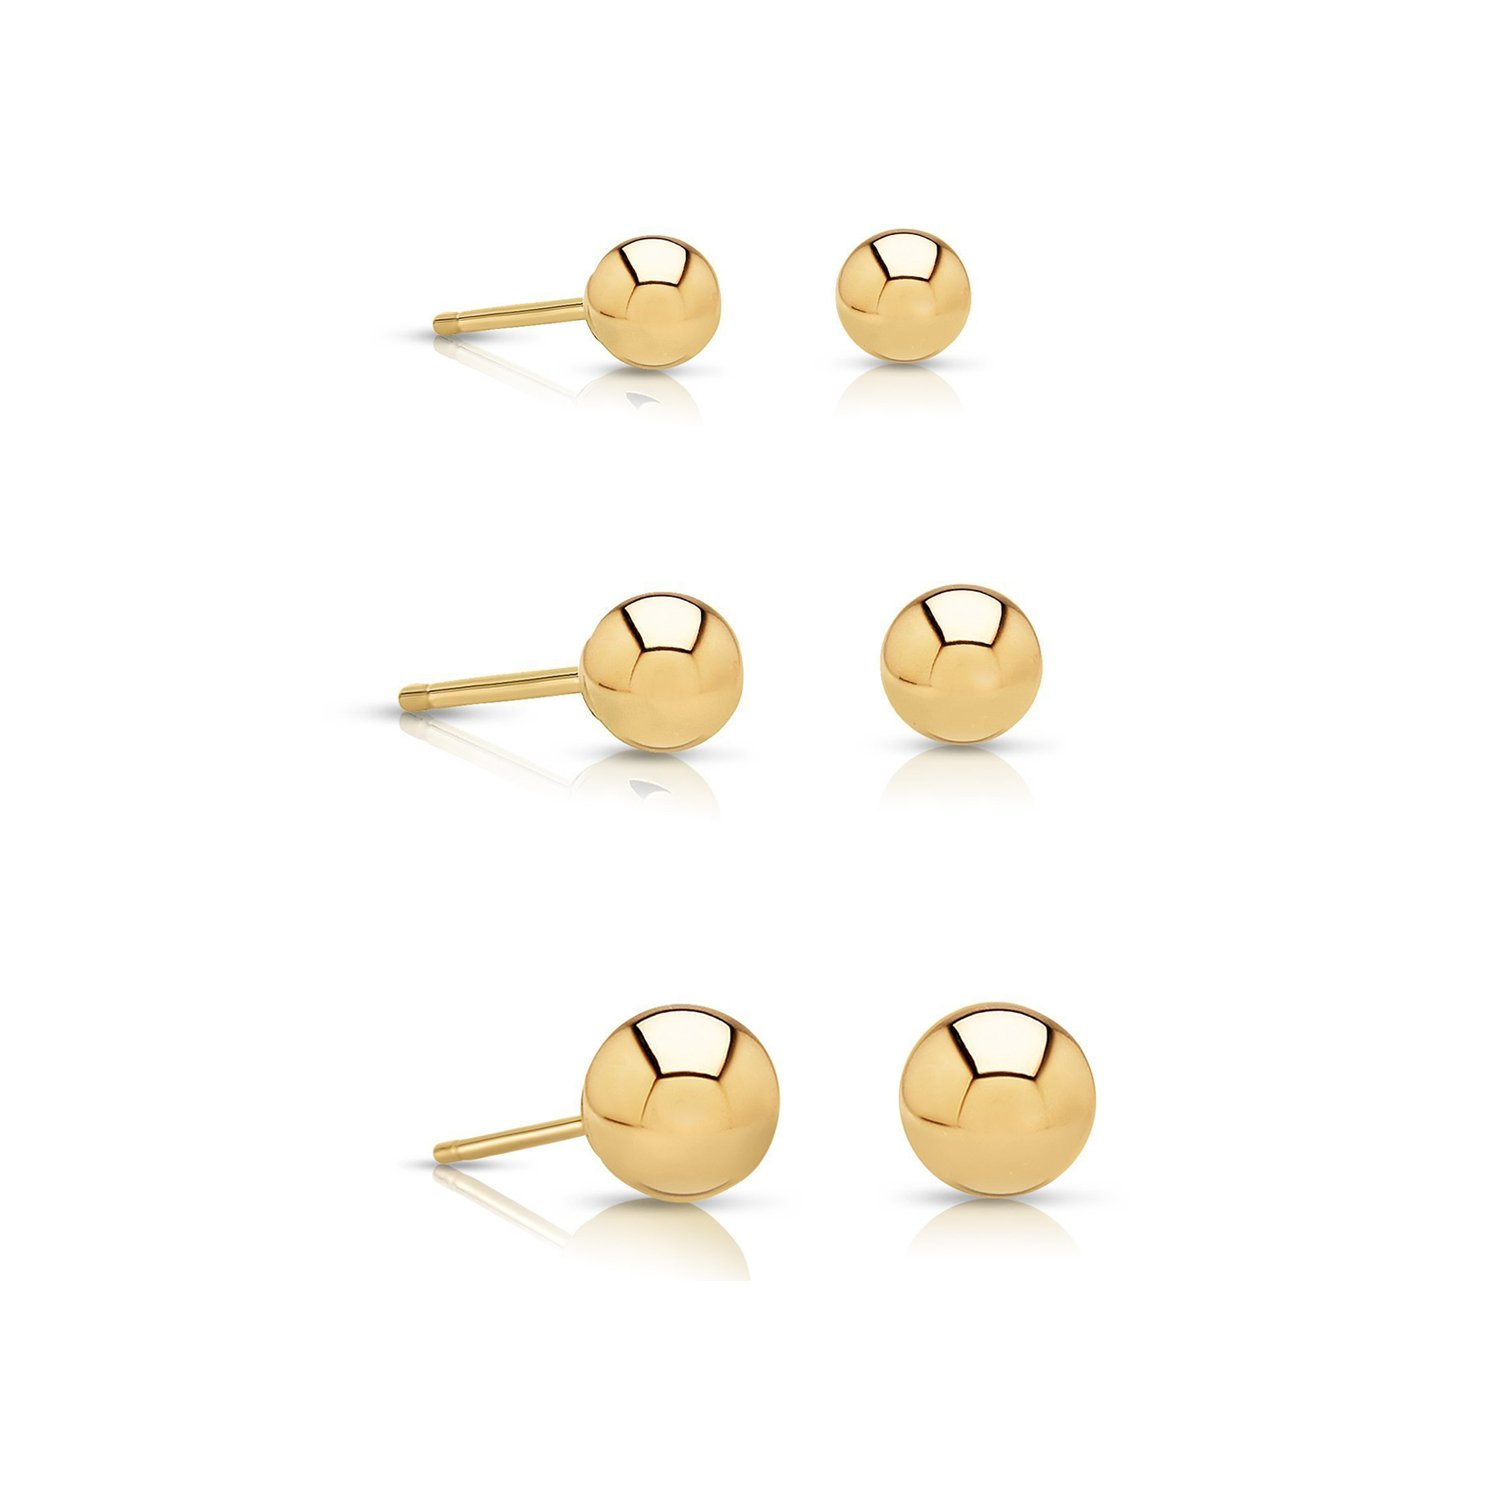 14k Gold Ball Stud 3 Pair Earrings Set (3mm, 4mm, 5mm) (yellow-gold)